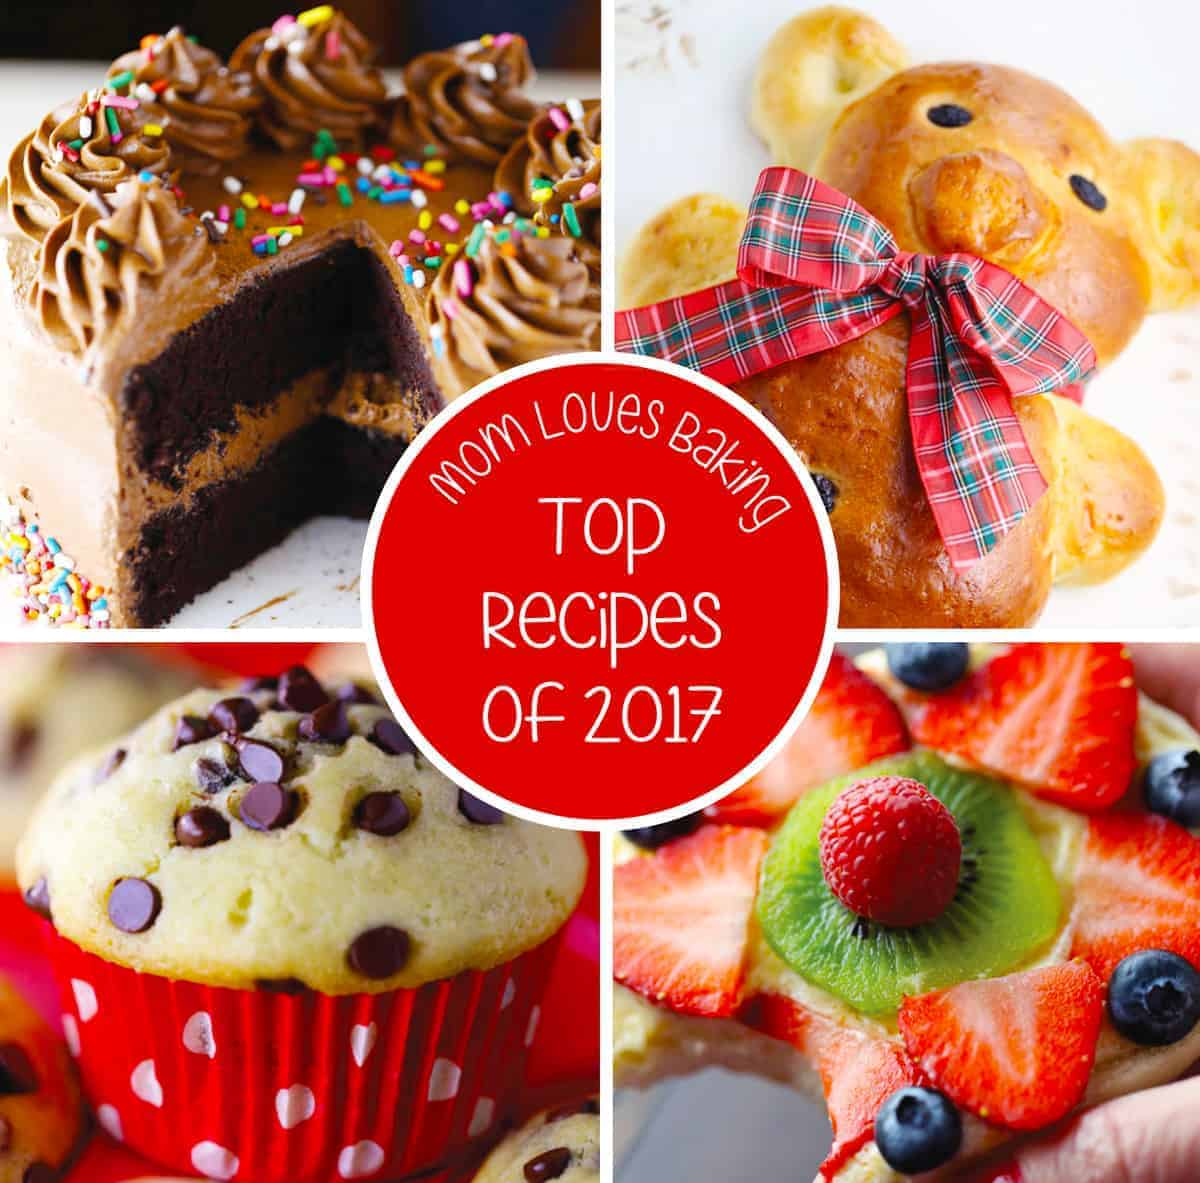 Top 10 Recipes 2017